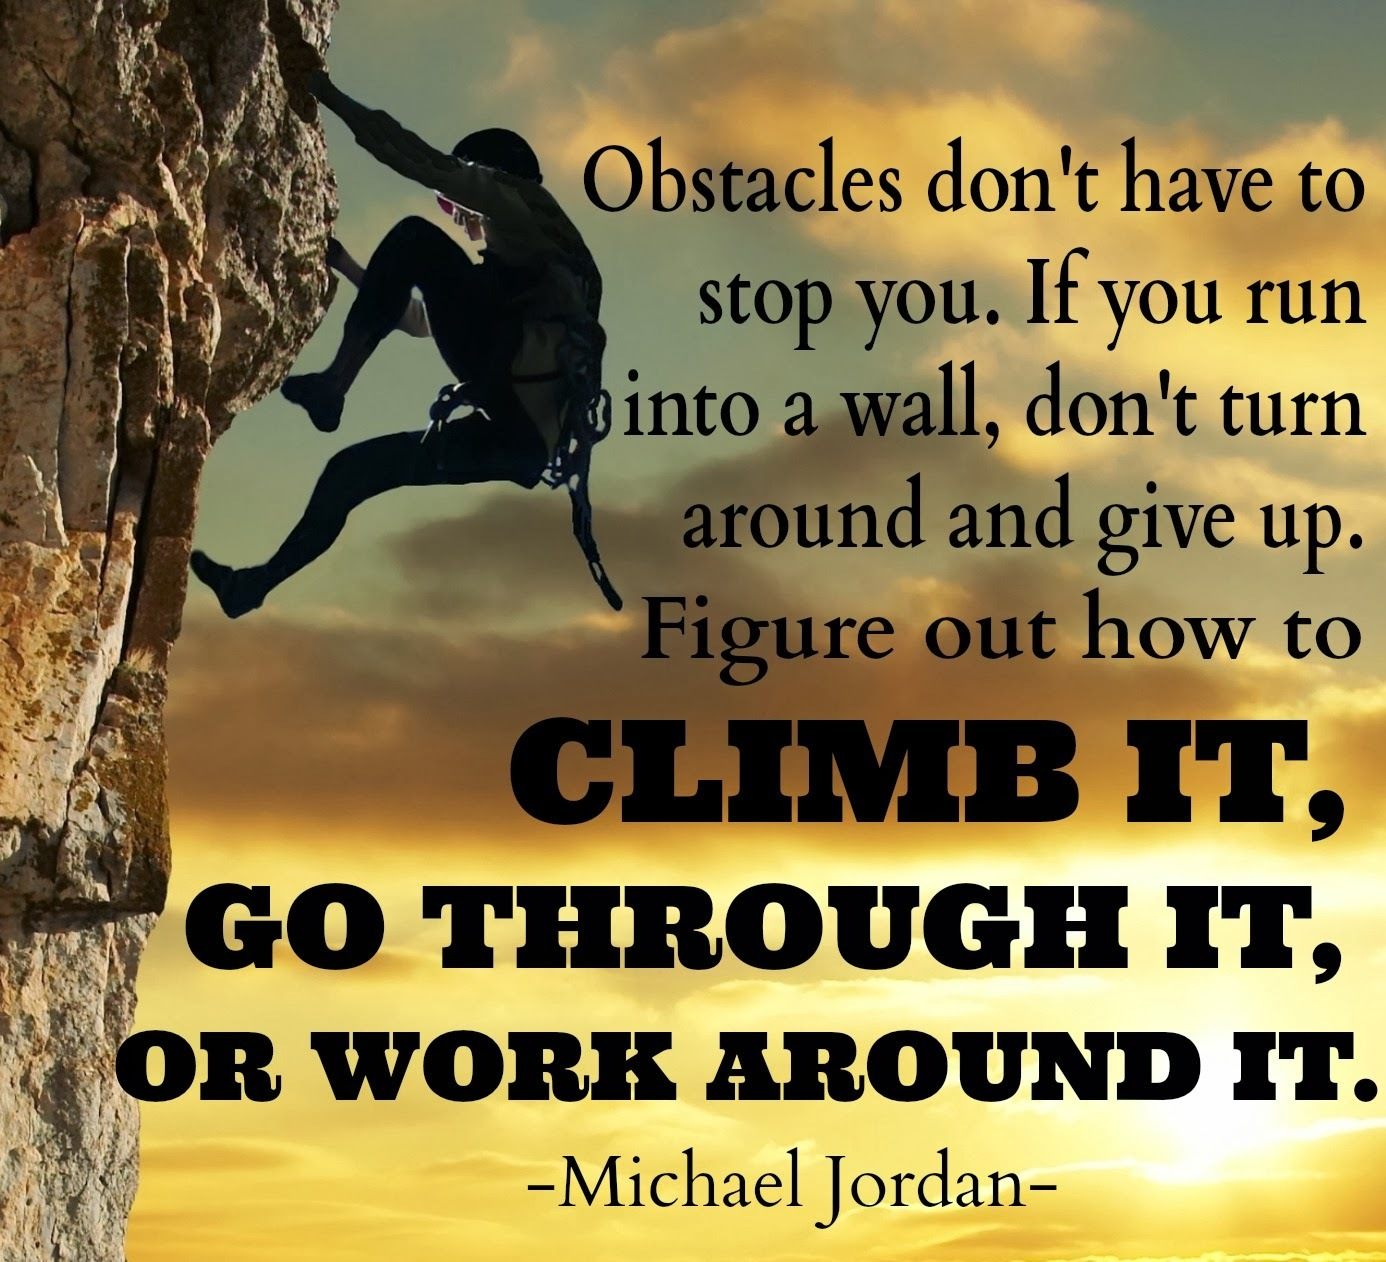 Some Educational Quotes: Inspirational And Motivational Quotes And Images With